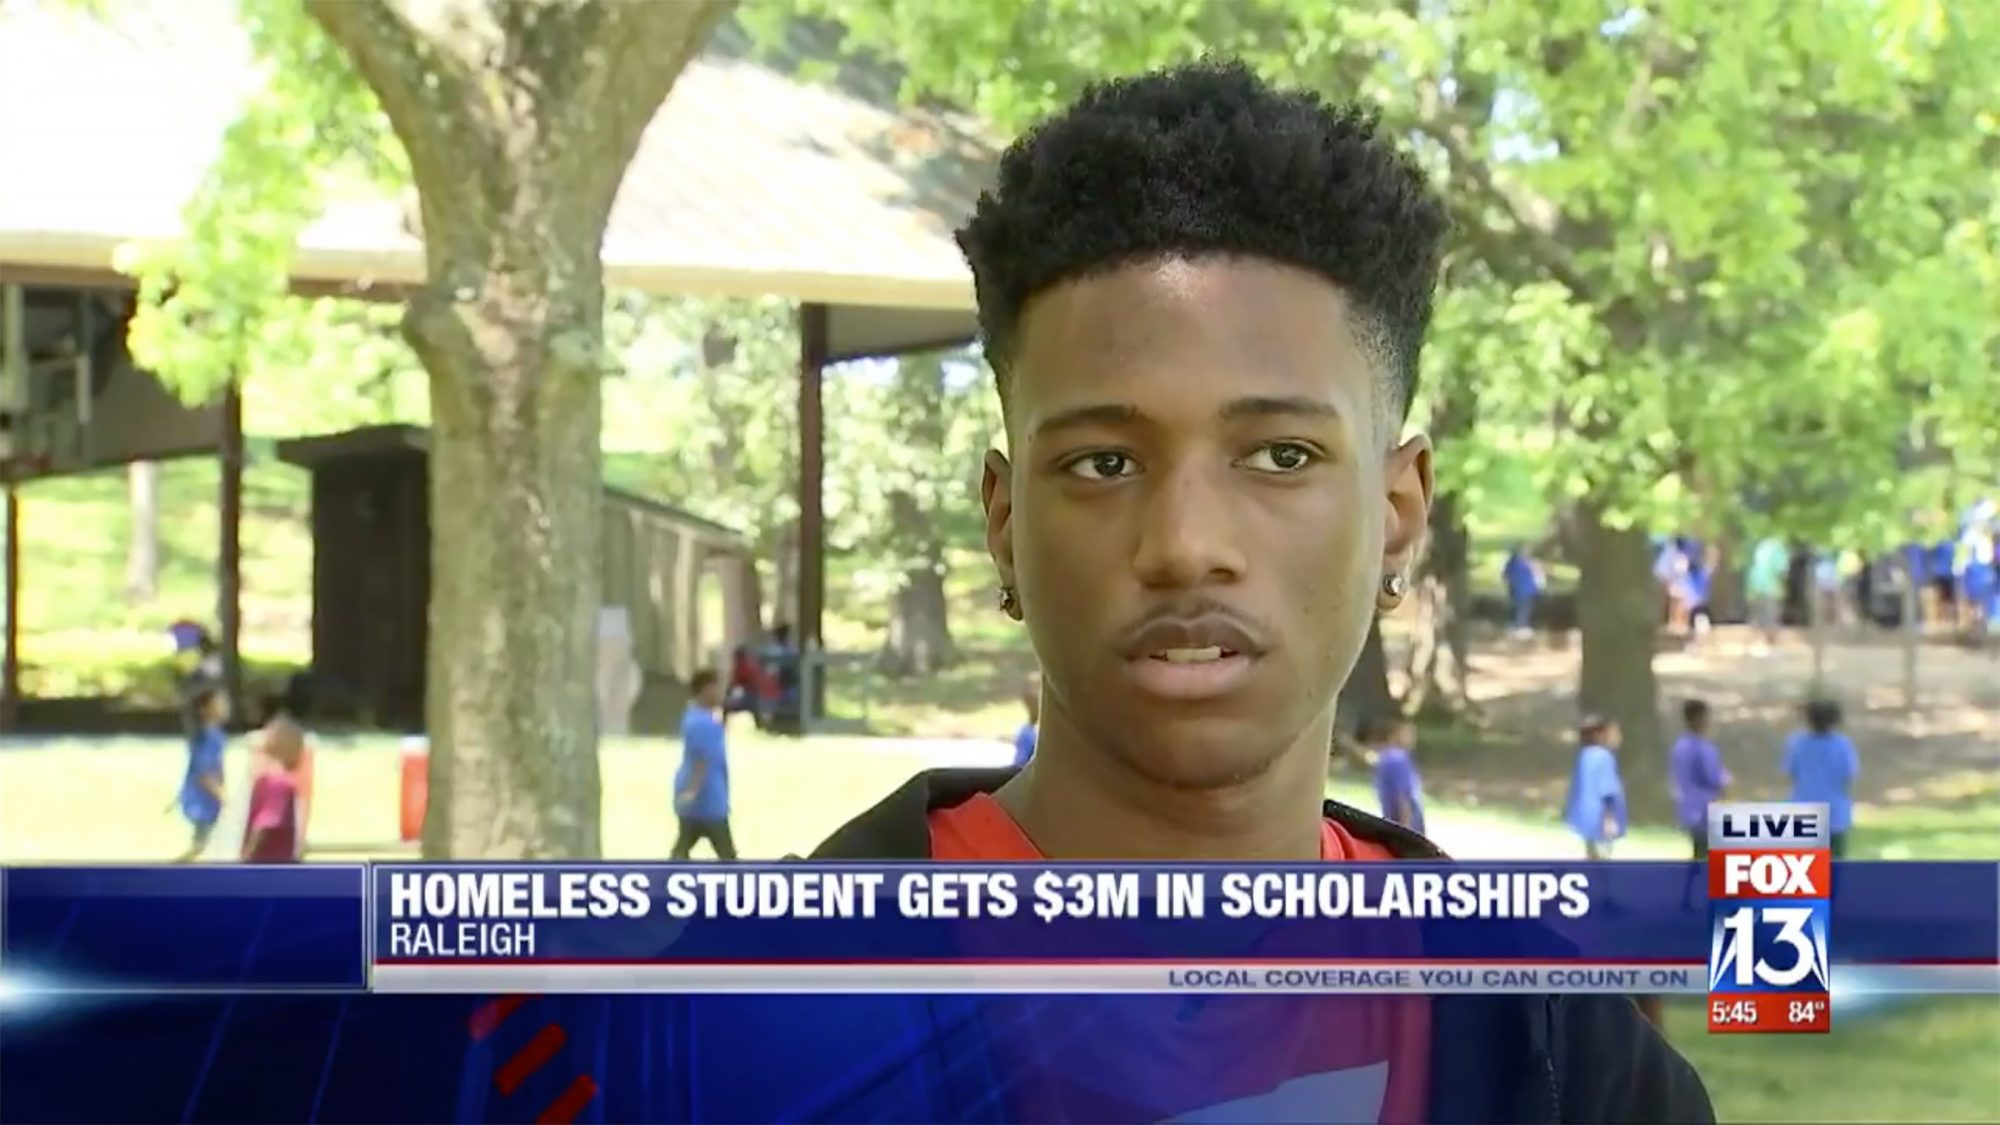 High School Student With 4.3 GPA Awarded $3 Million in Scholarships - Tupac Mosley